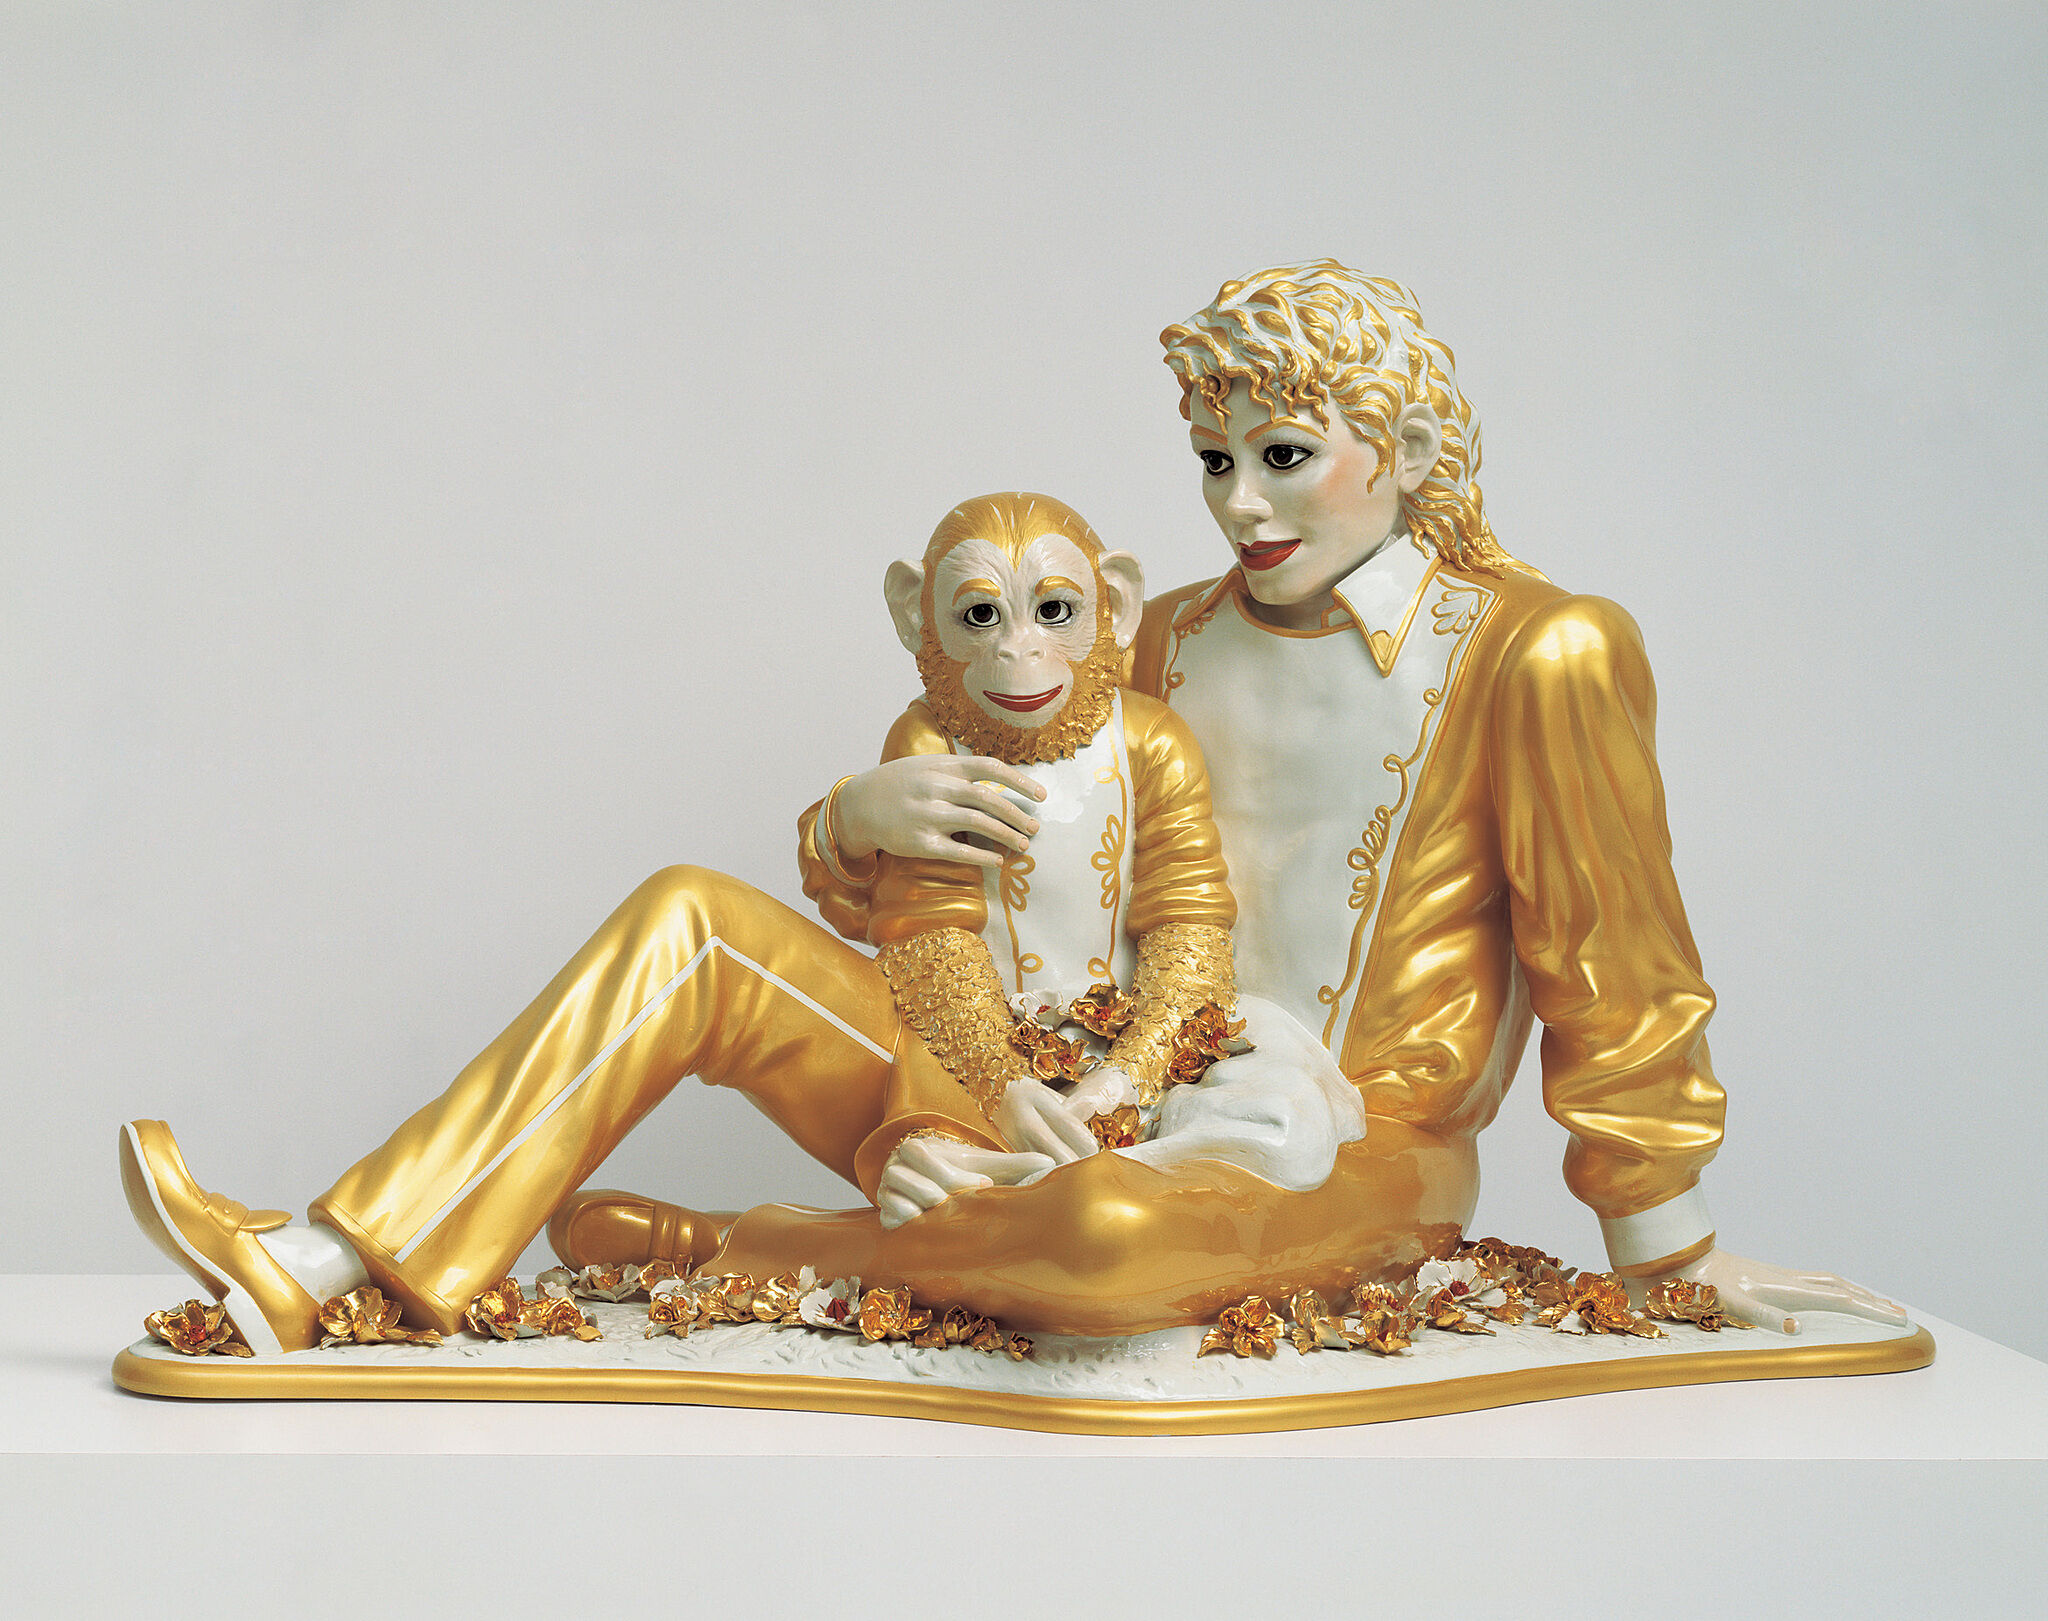 A sculpture of Michael Jackson and his pet chimpanzee Bubbles.